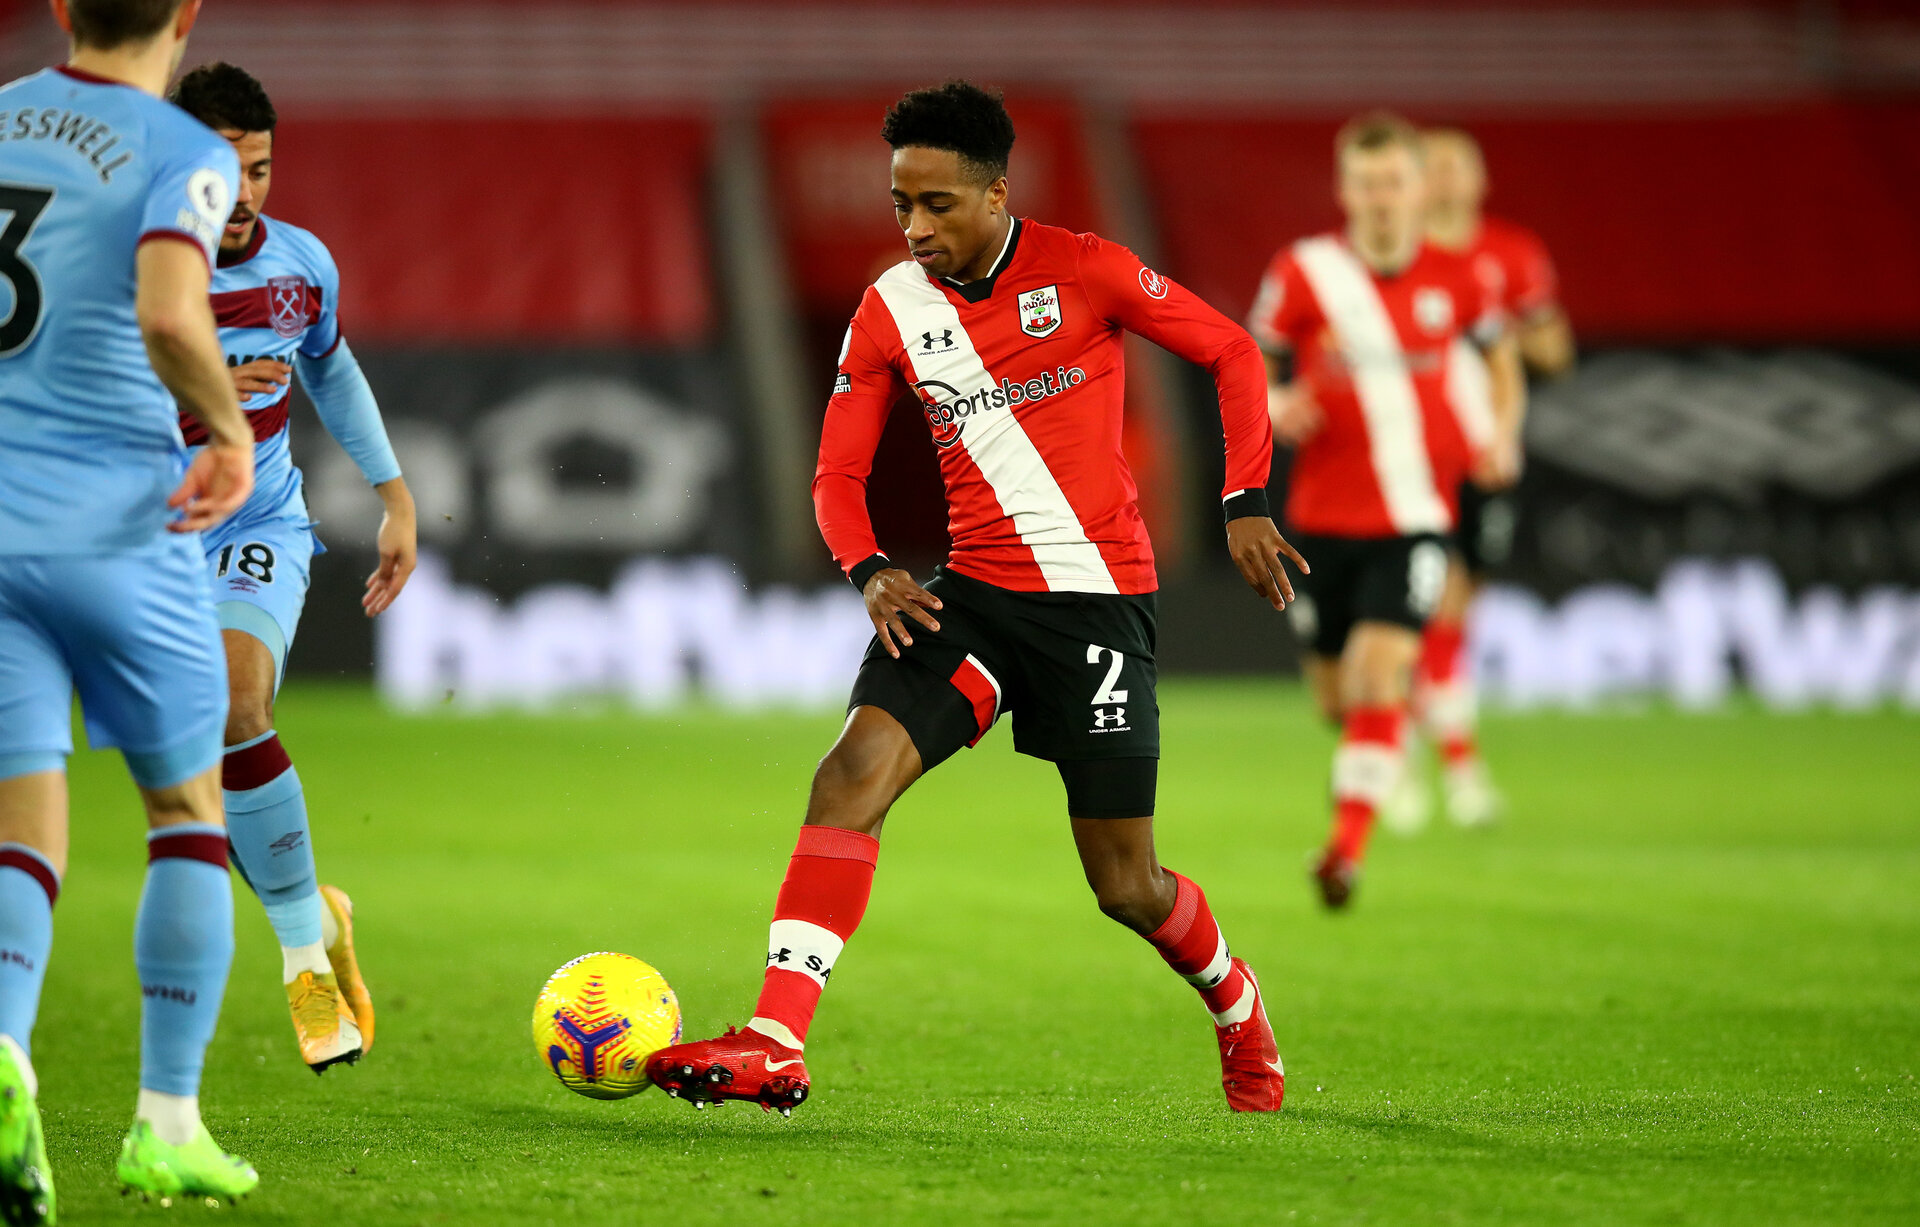 SOUTHAMPTON, ENGLAND - DECEMBER 29: Kyle Walker-Peters of Southampton during the Premier League match between Southampton and West Ham United at St Mary's Stadium on December 29, 2020 in Southampton, England. (Photo by Matt Watson/Southampton FC via Getty Images)